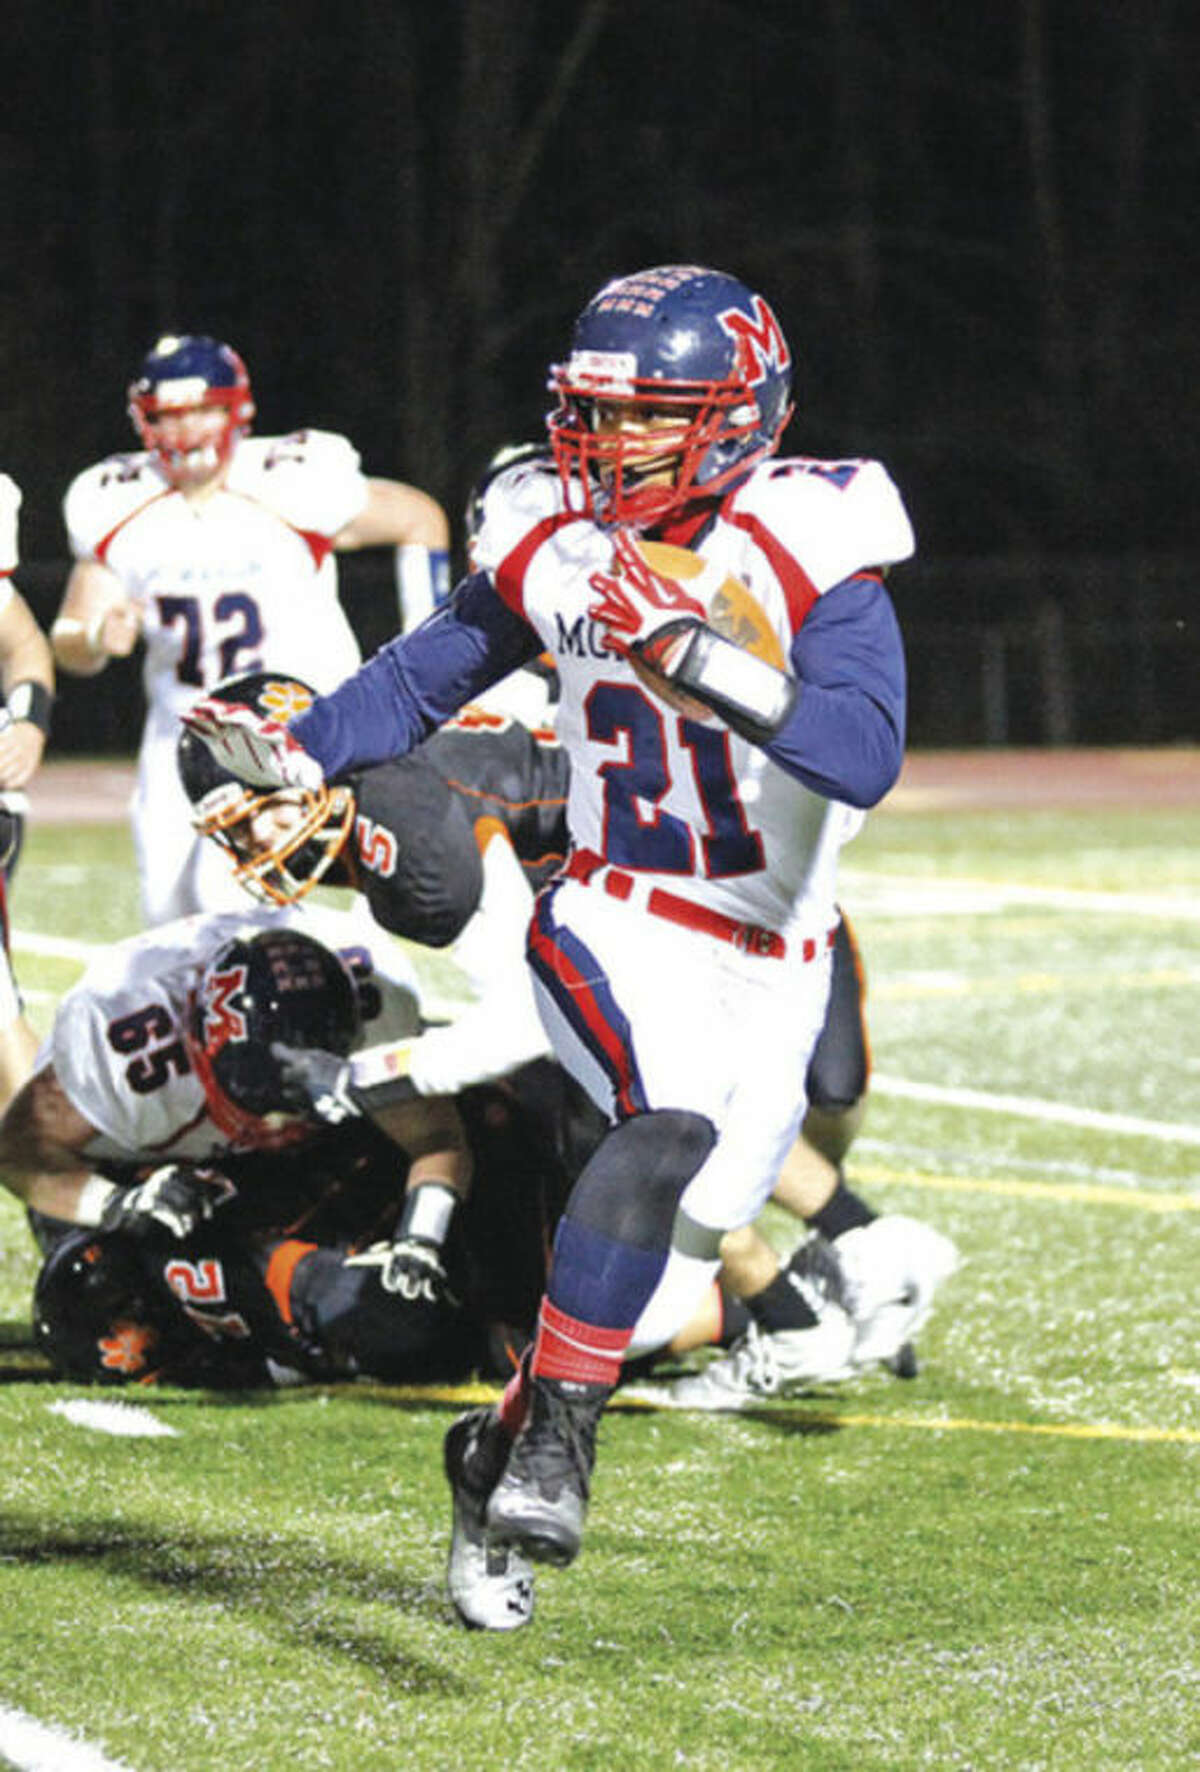 Hour photo/Danielle Calloway Brien McMahon's Timothy Hinton Jr. looks for running room during Friday night's game against Ridgefield. Hinton scored on an 83-yard run, but that was one of the few highlights for the Senators, who suffered their first loss of the season after seven wins. Ridgefield won, 44-7.